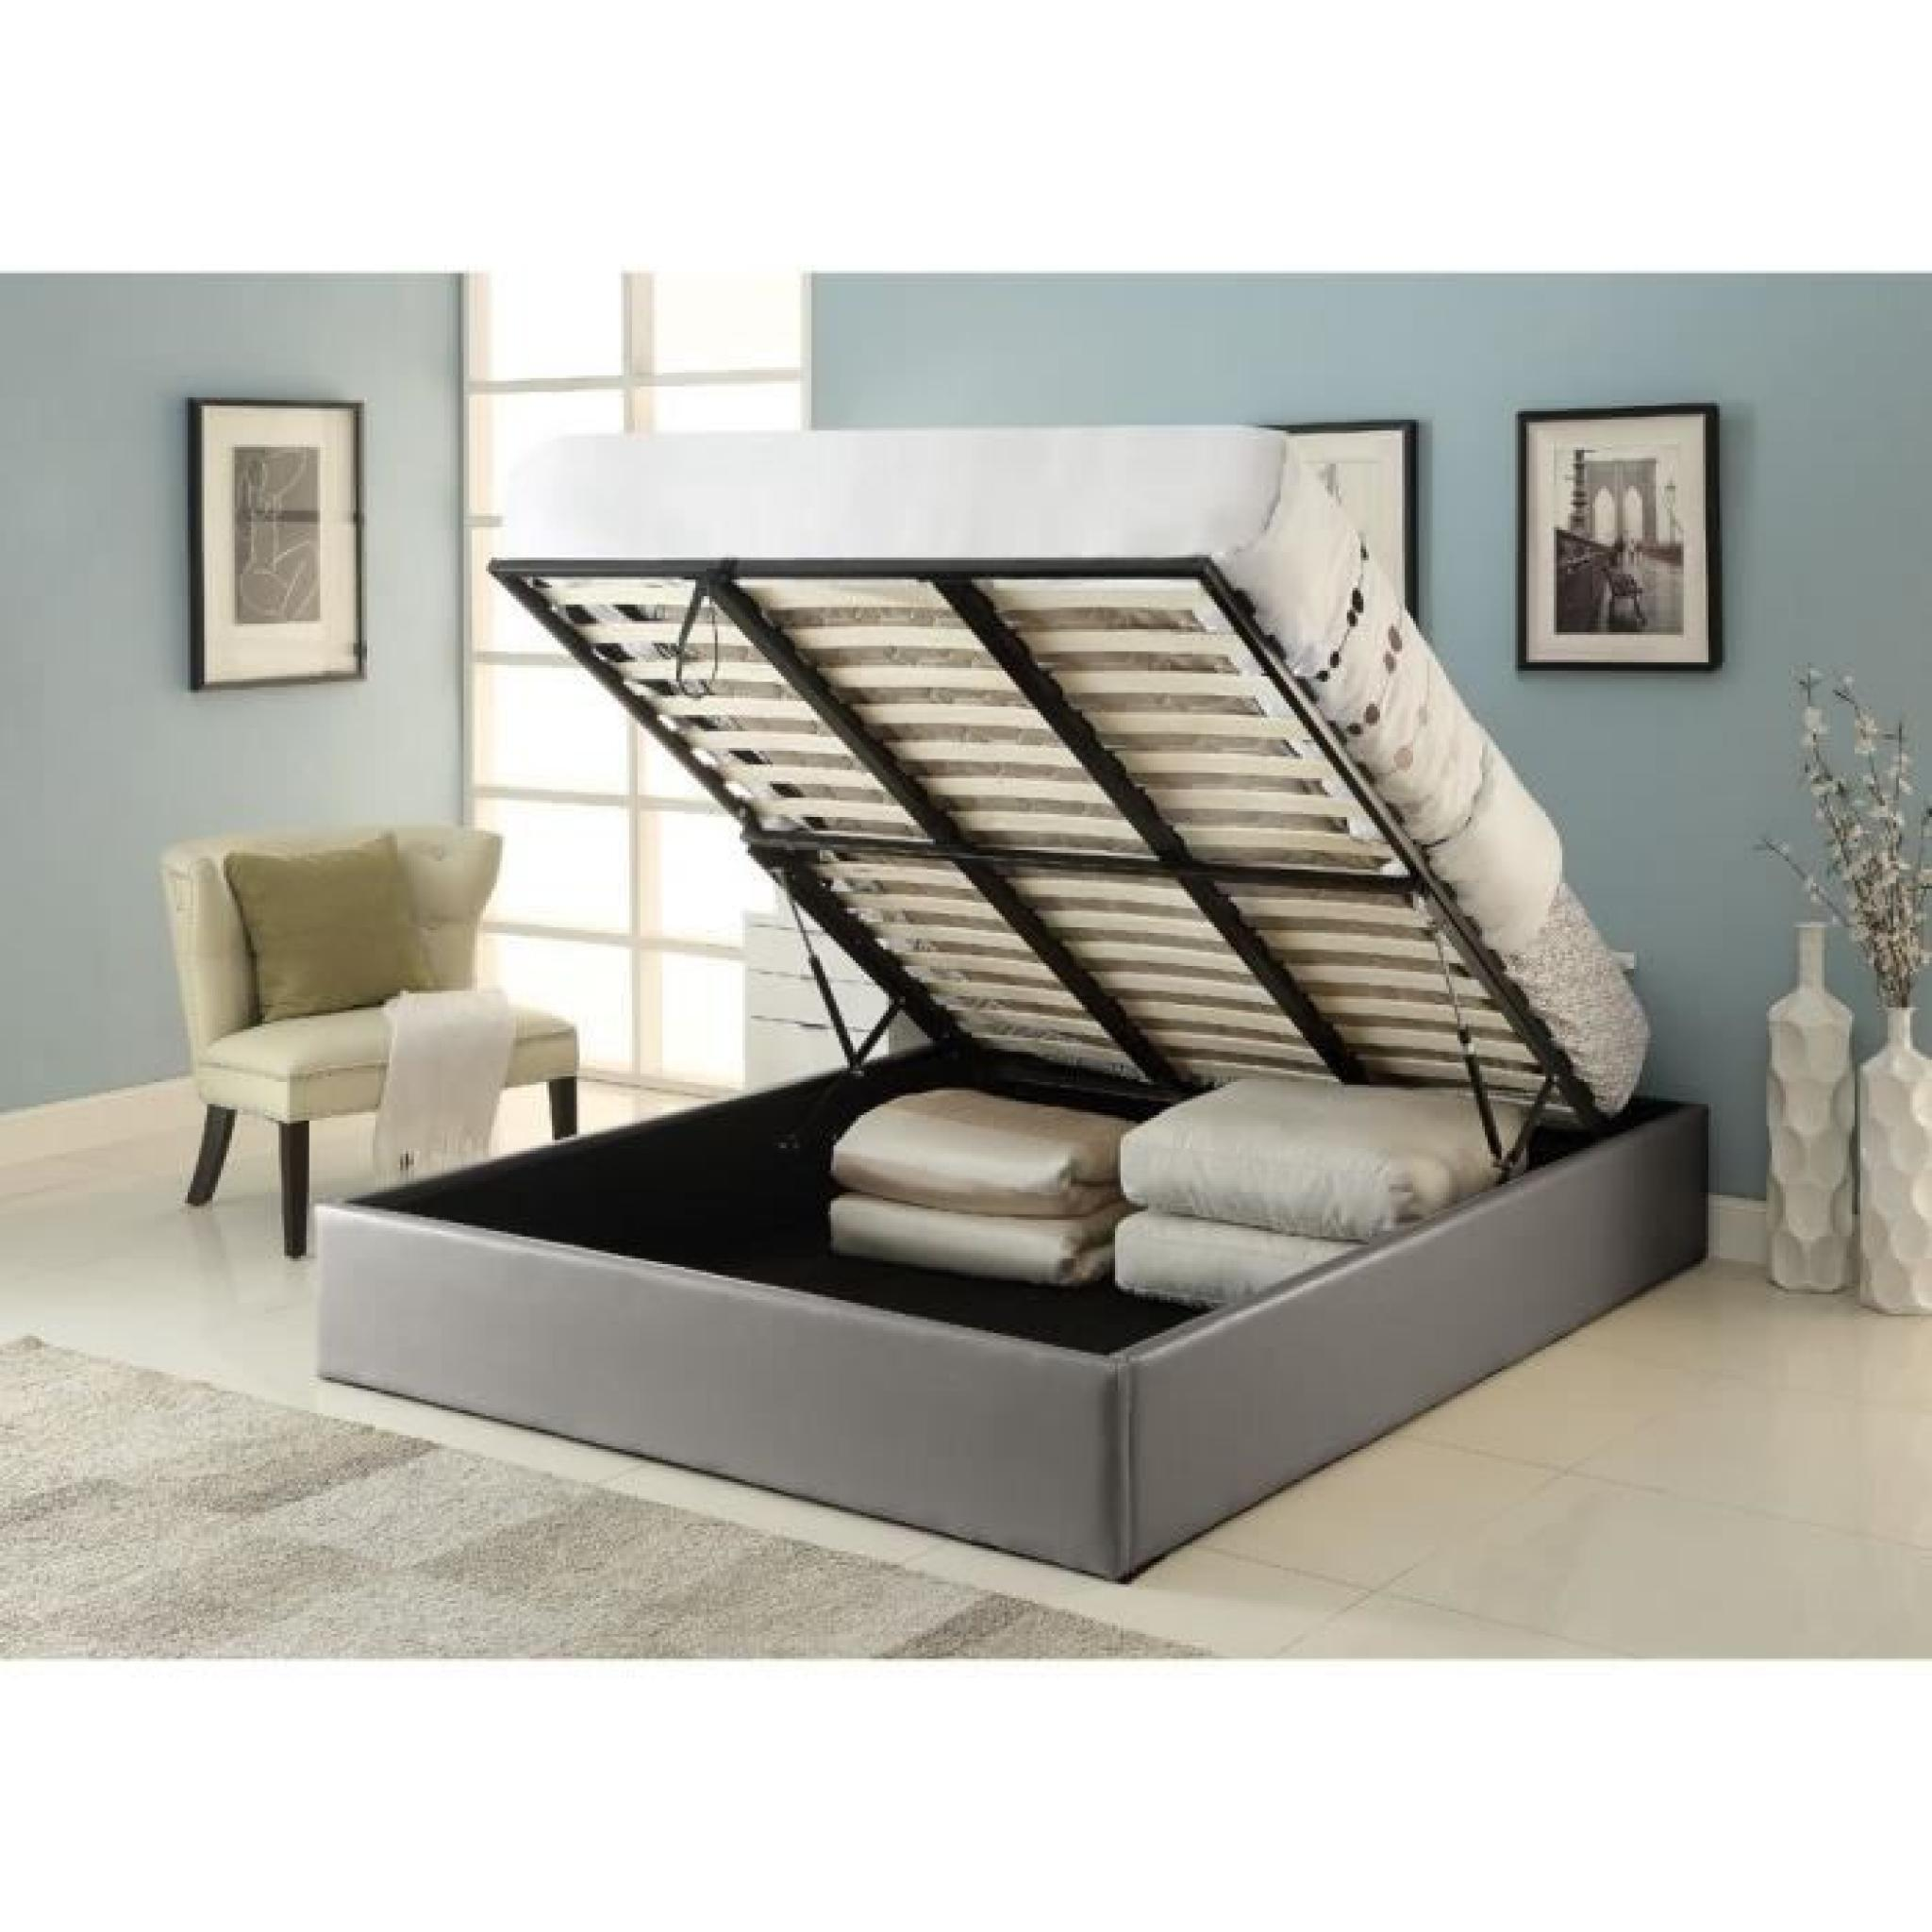 majesty lit coffre adulte 140x190 sommier gris achat. Black Bedroom Furniture Sets. Home Design Ideas